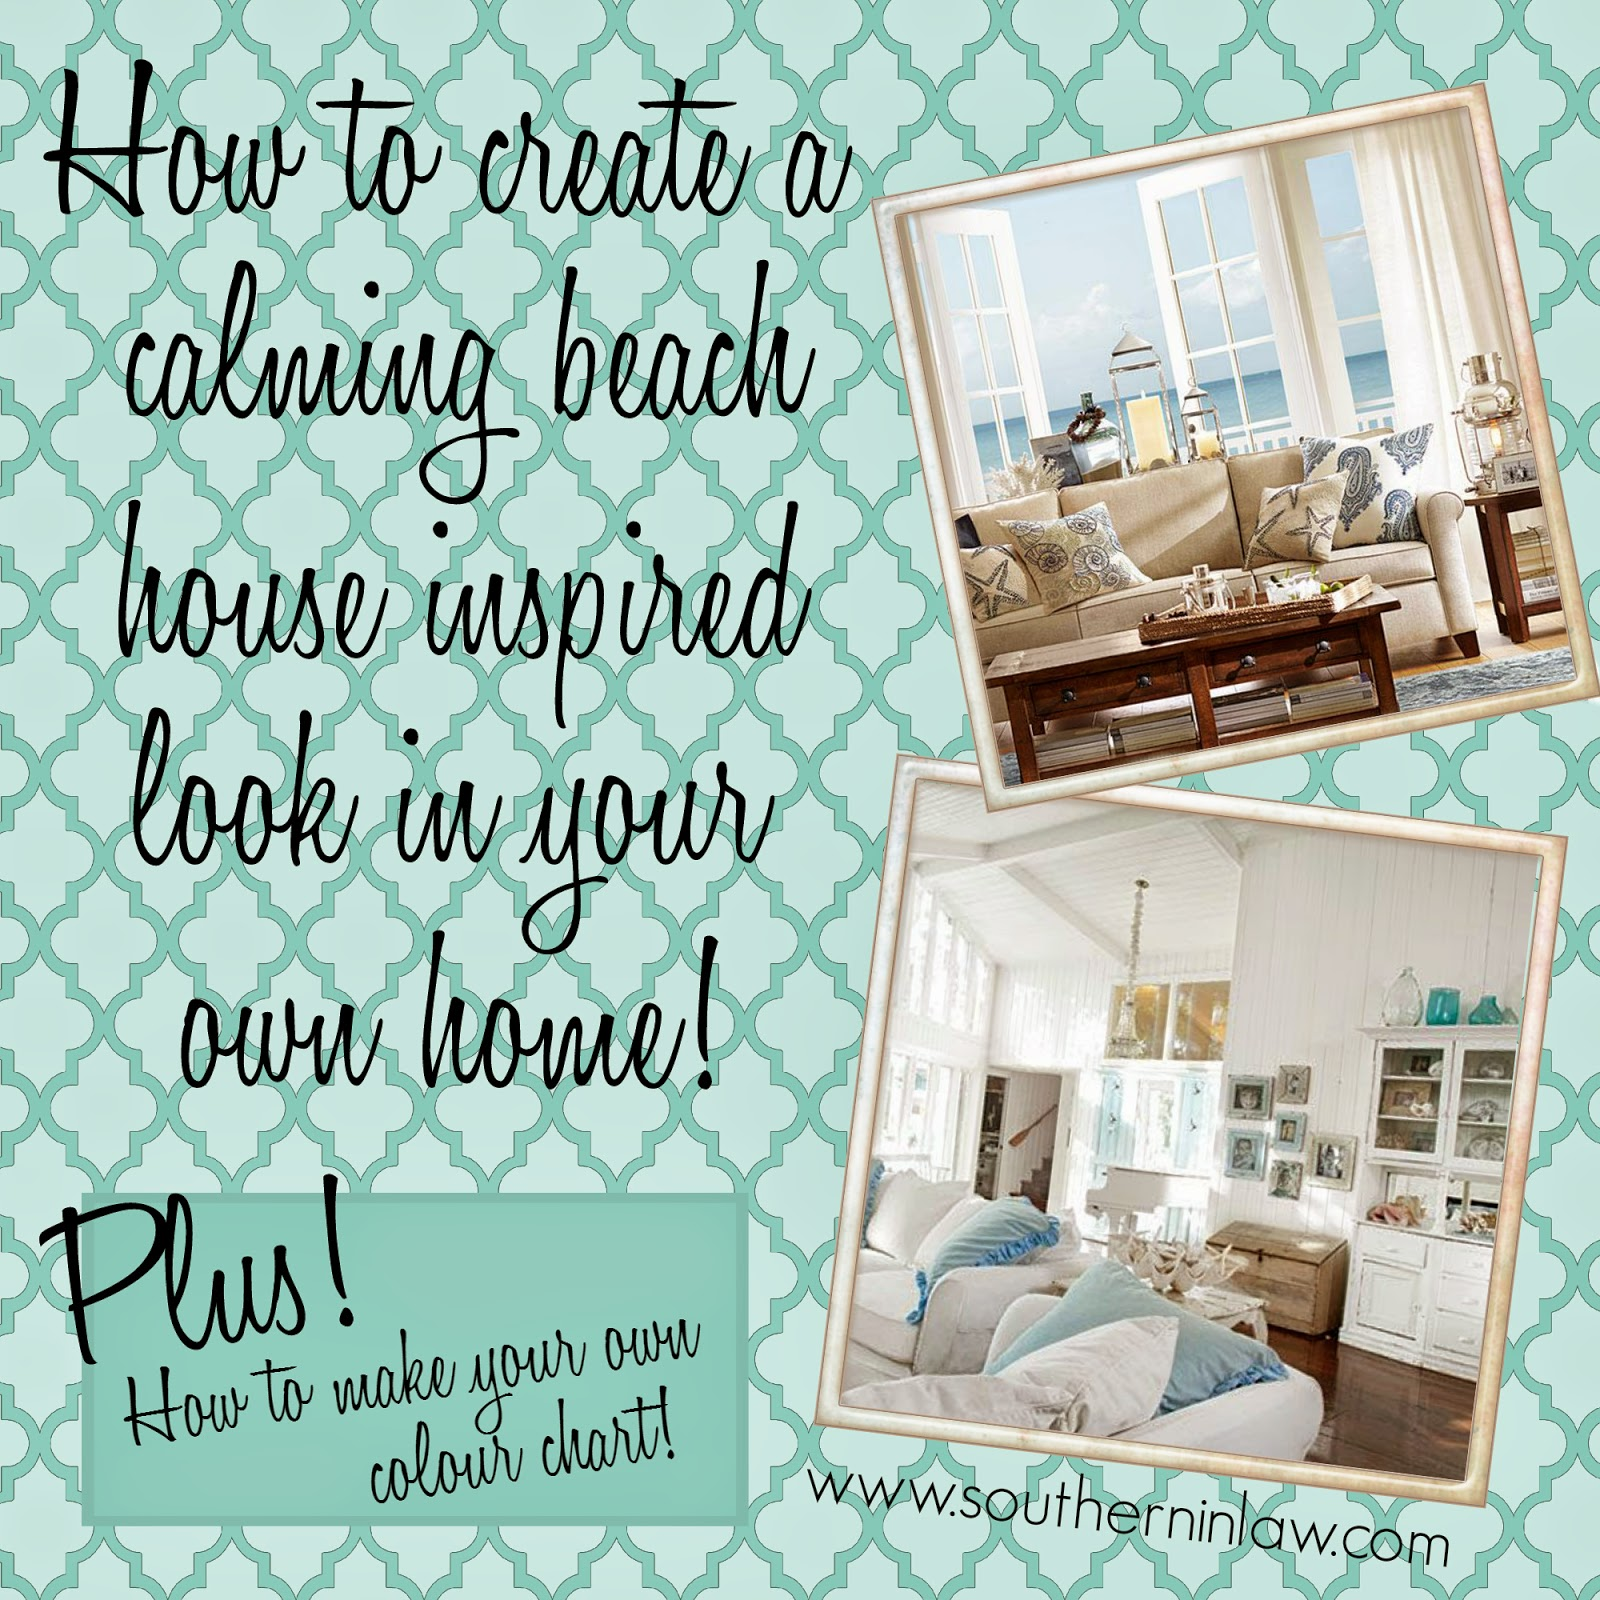 How to create a beach house inspired look in your own home